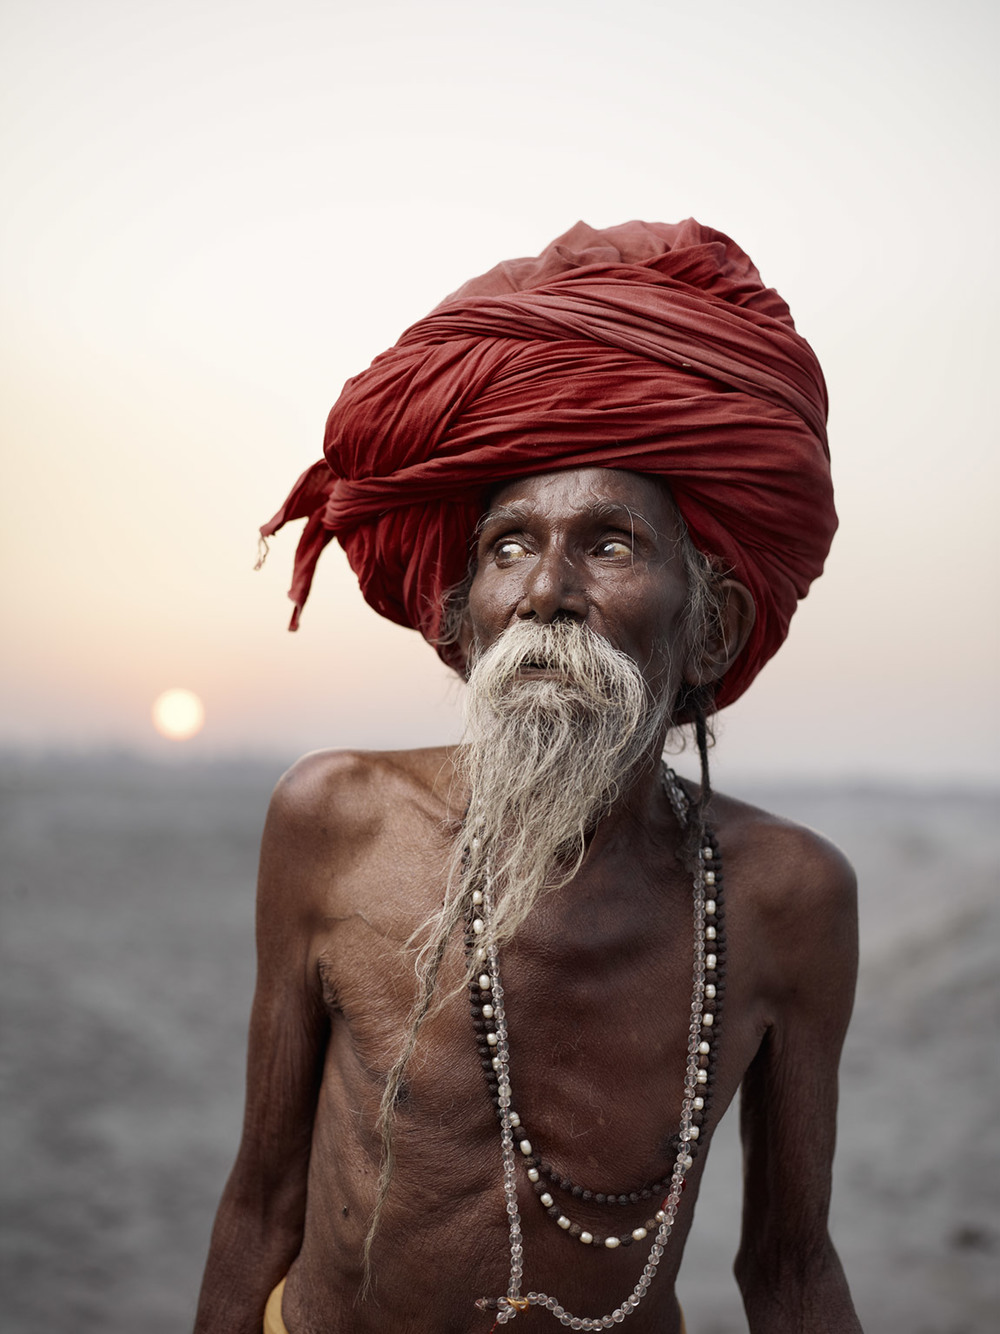 Joey_L_Photographer_Lal_Baba_Varanasi_India_Sadhu.jpg